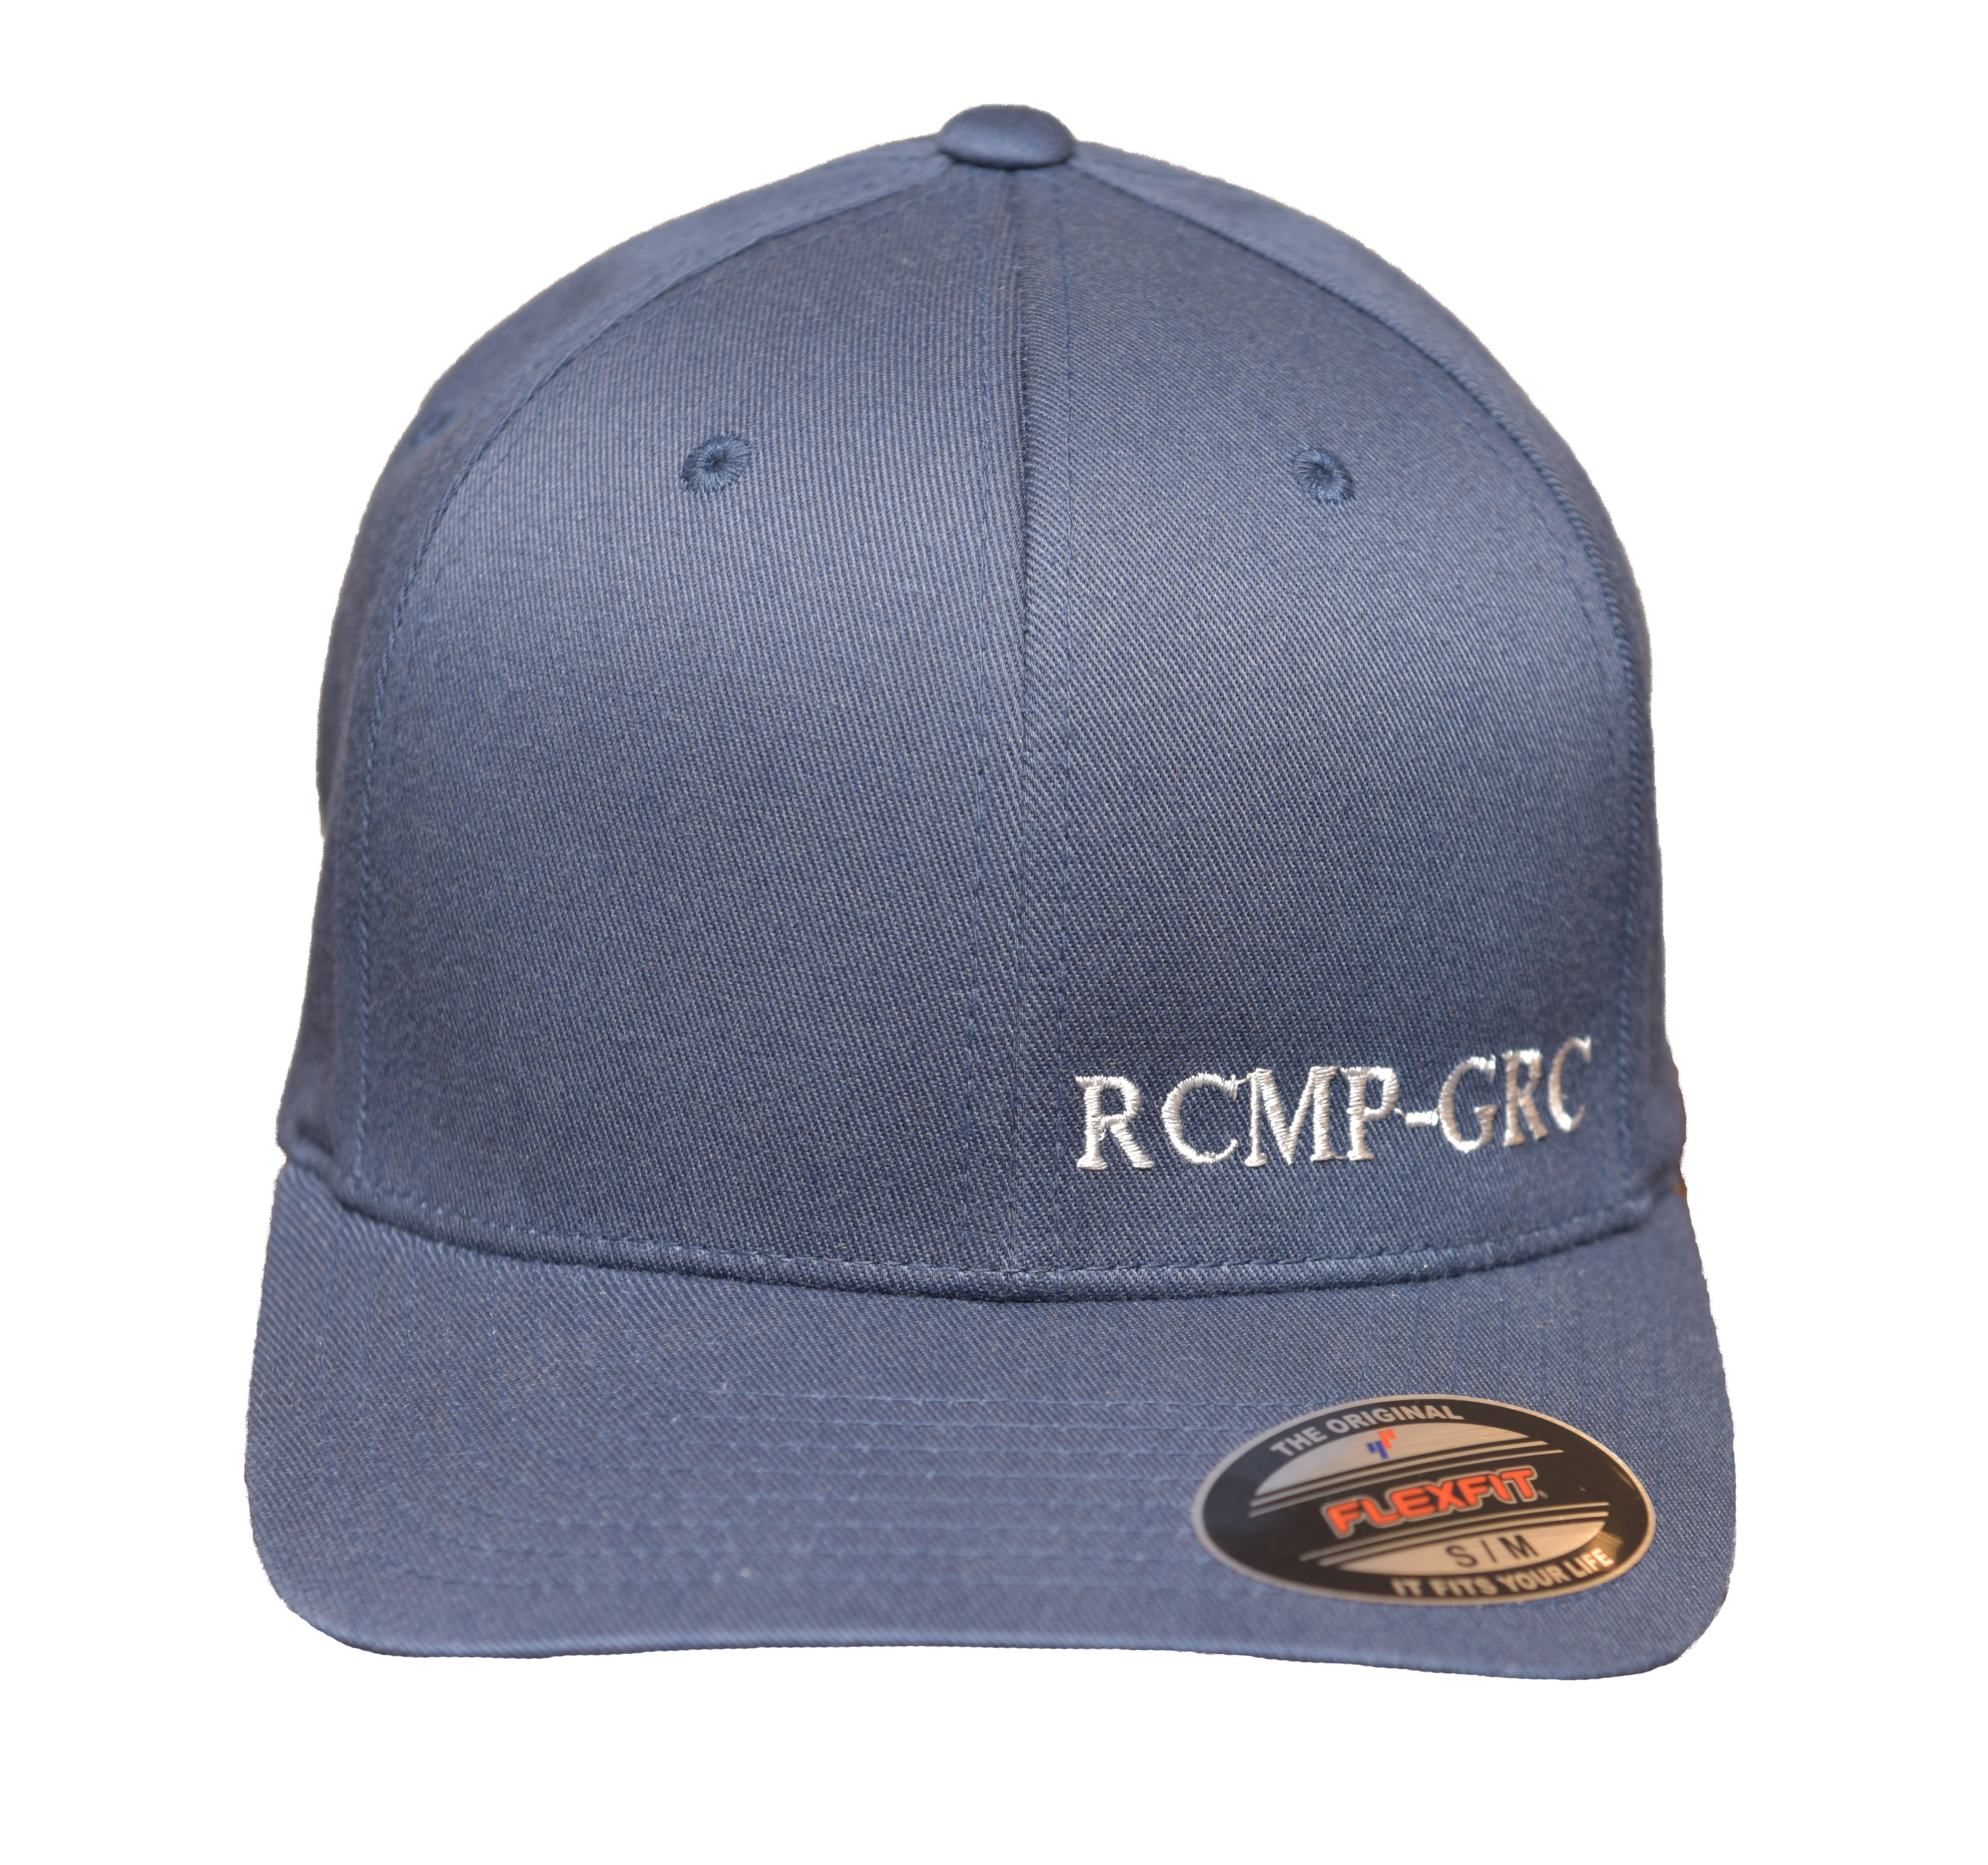 RCMP-GRC Embroidered Ball Cap – RCMP Gift Shop 9703c3ef8bd